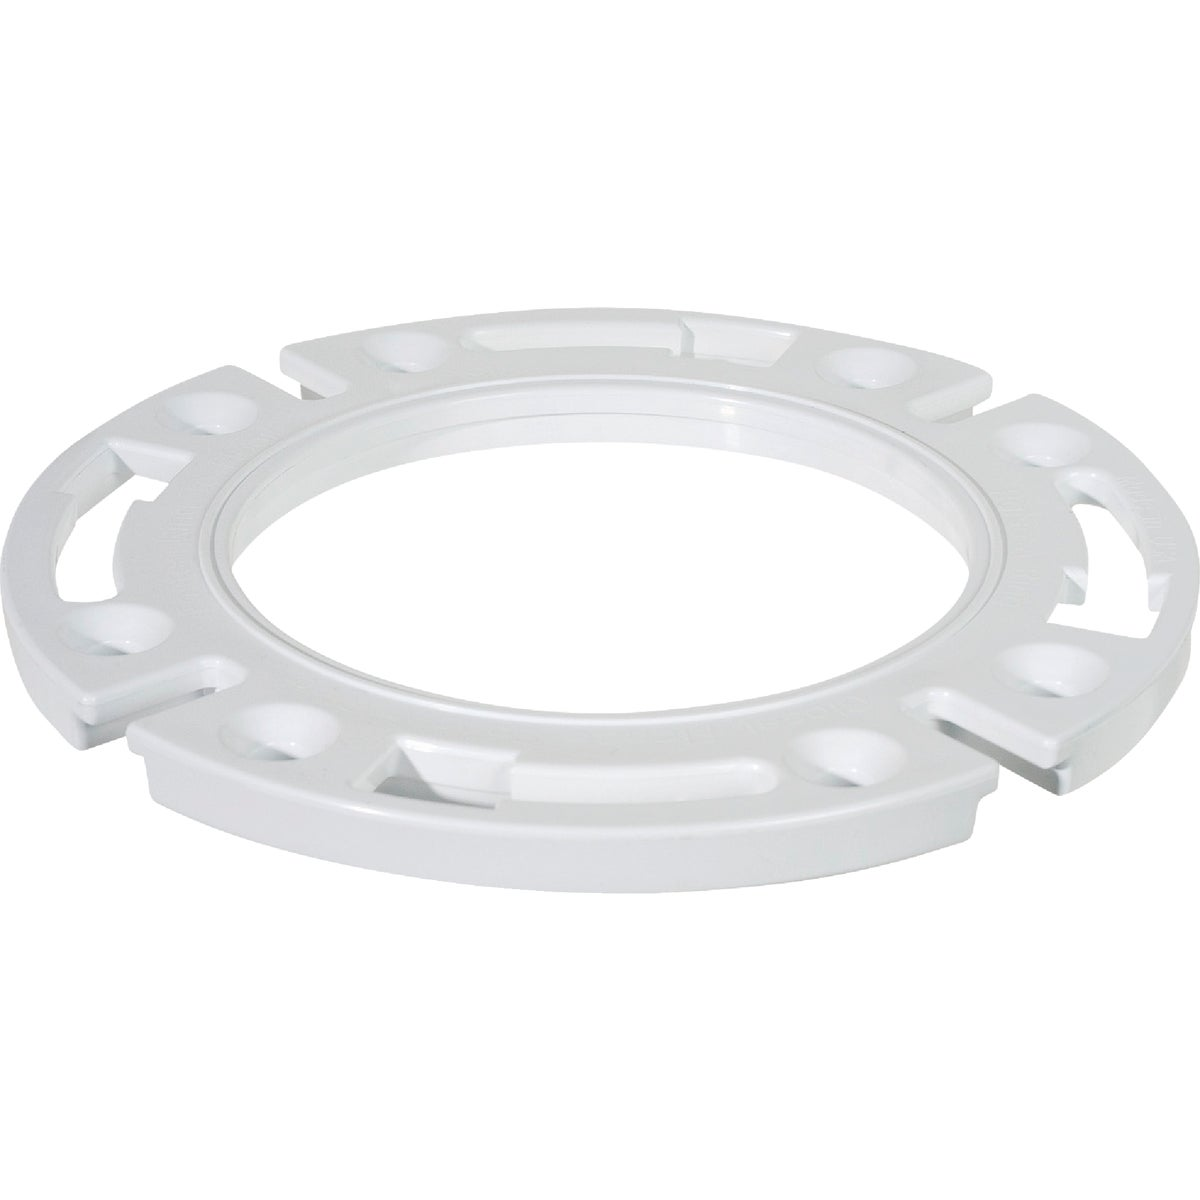 CLOSET FLANGE SPACER - 886-R by Sioux Chief Mfg